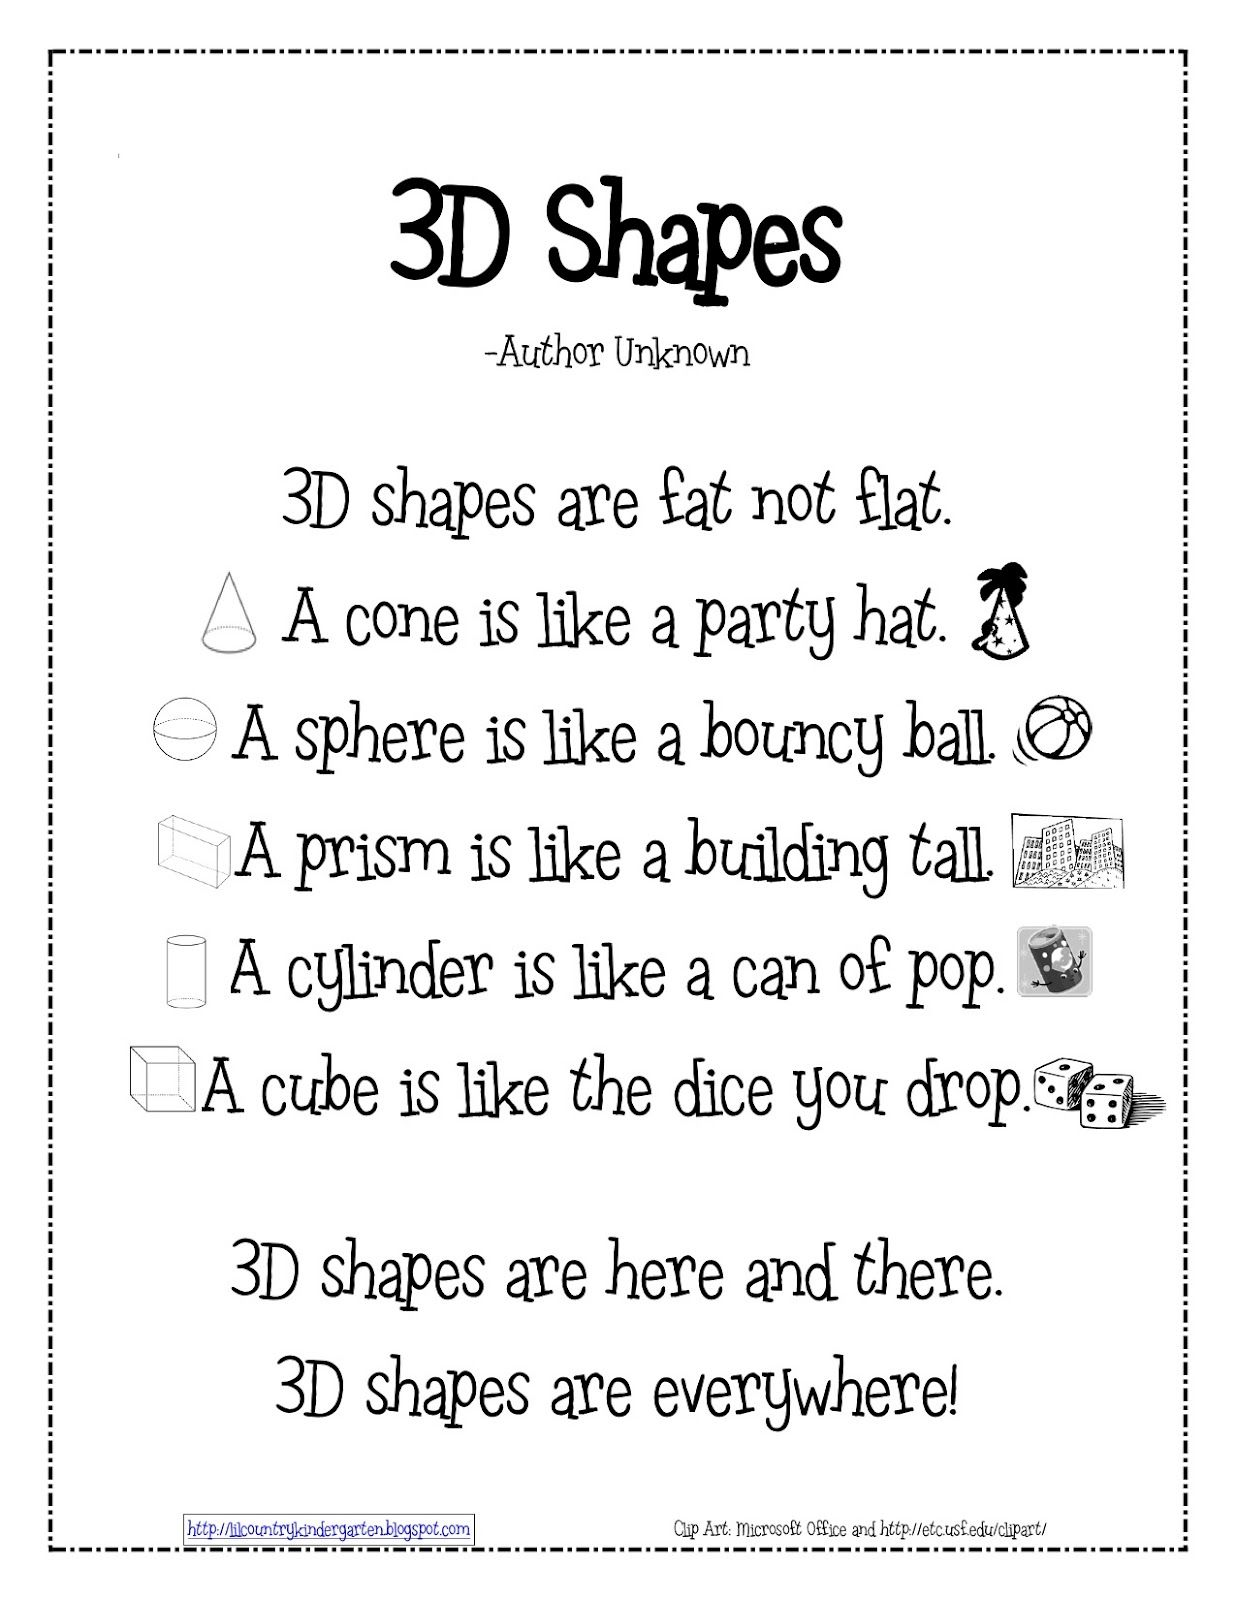 kinder learning garden blog teaching 3d shapes kindergarten teacher stuff pinterest 3d. Black Bedroom Furniture Sets. Home Design Ideas